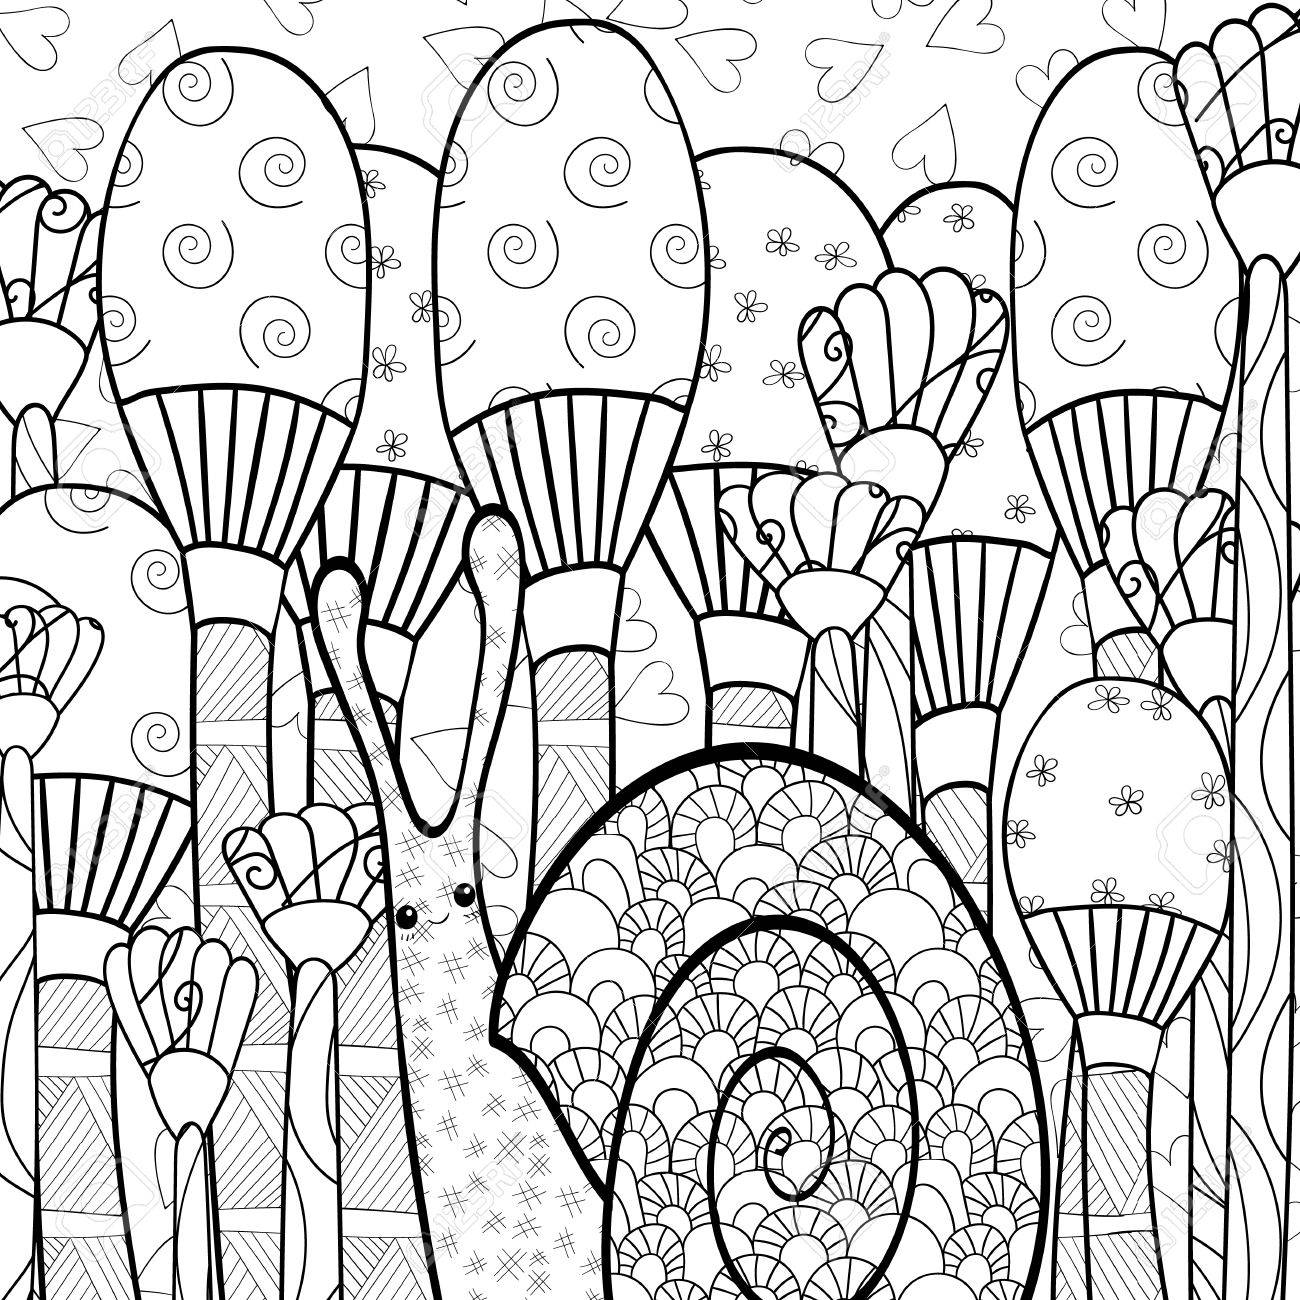 Cute Snail Adult Coloring Book Page In Whimsical Garden Line Art Illustration